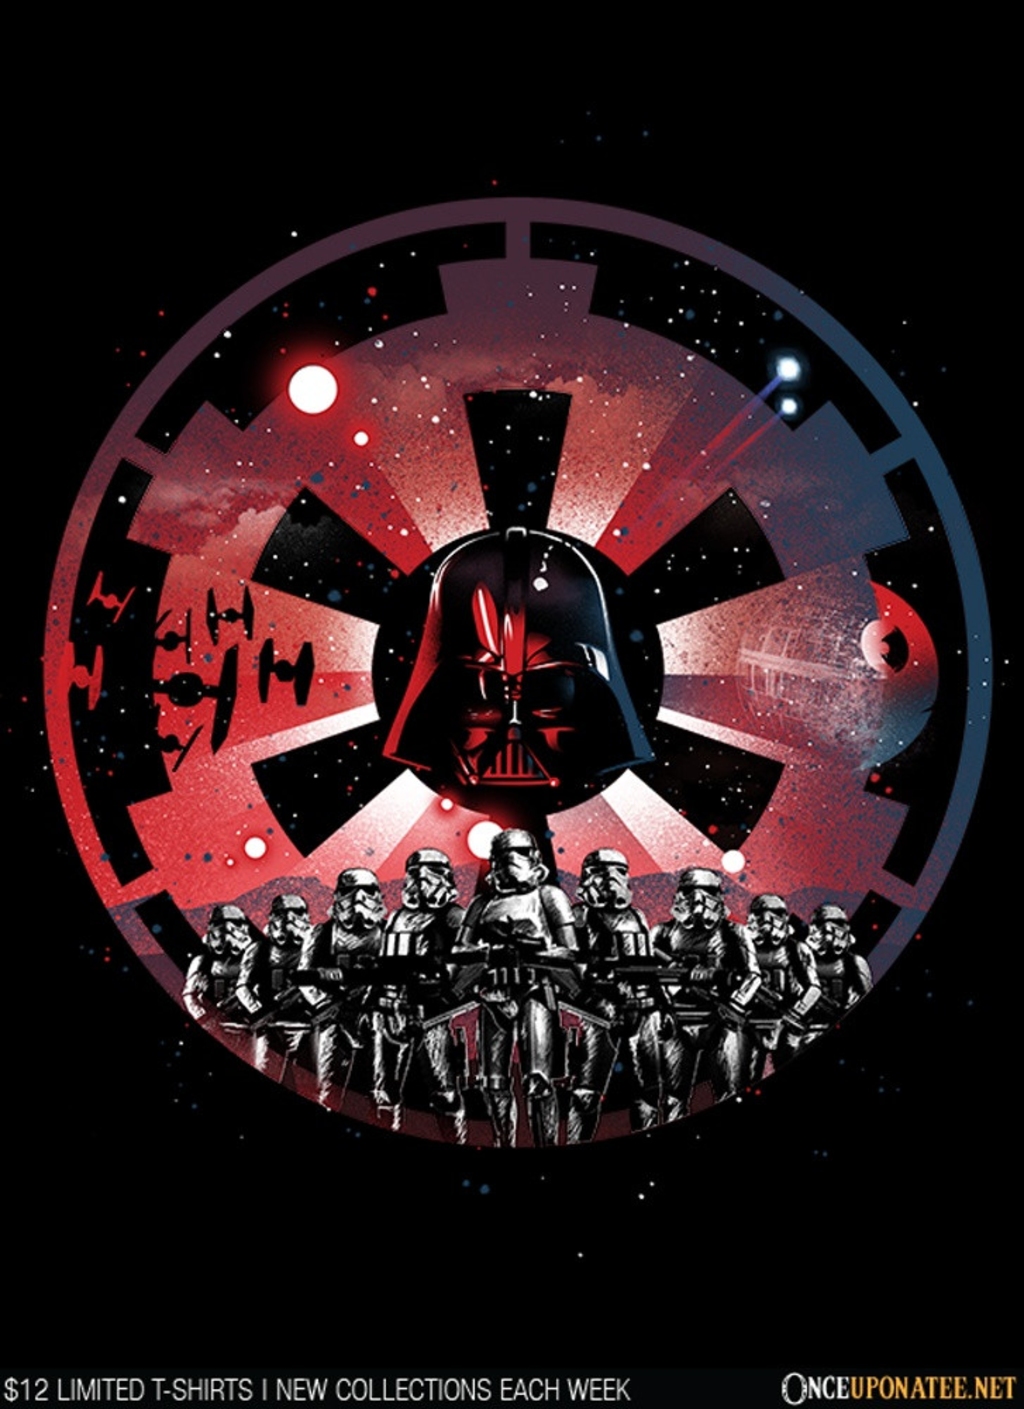 Once Upon a Tee: The Empire Rises